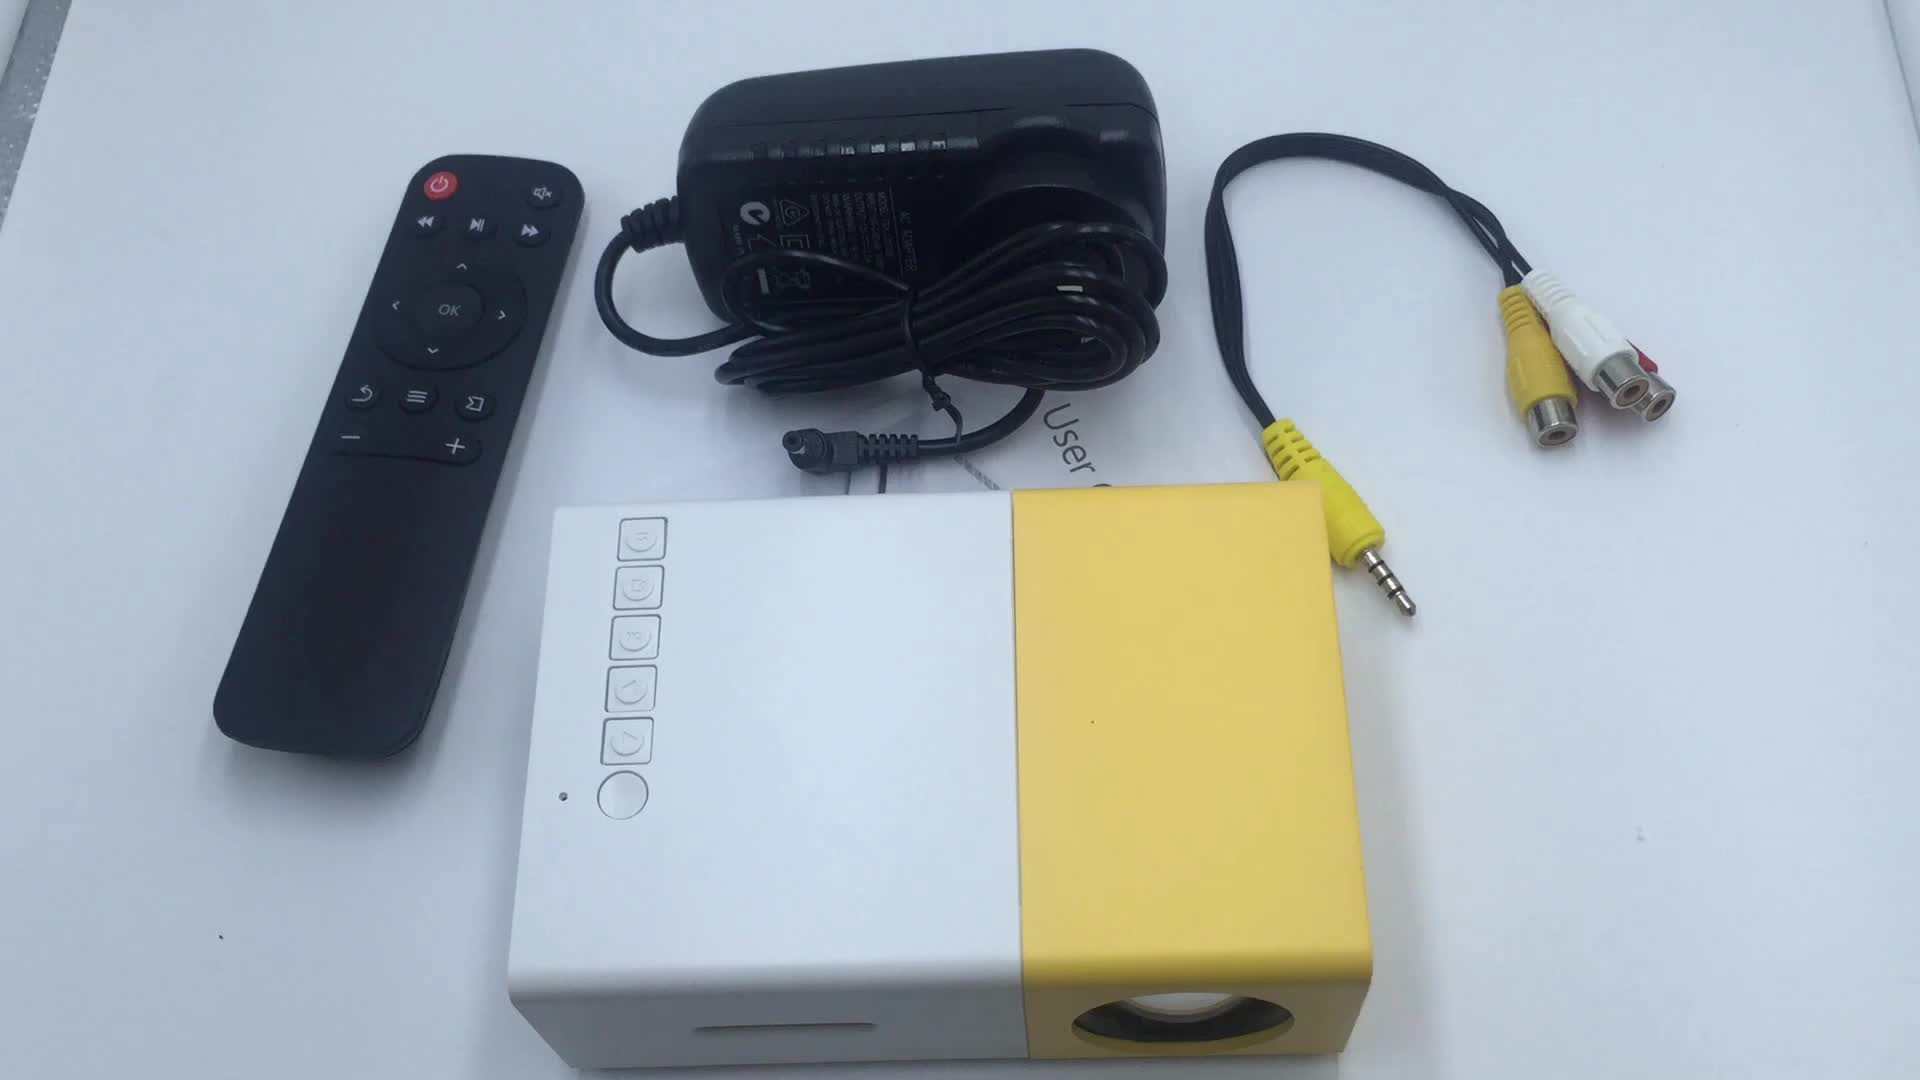 Wholesale 2019 Hot LED Portable home mini theater Projector pocket projector YG300